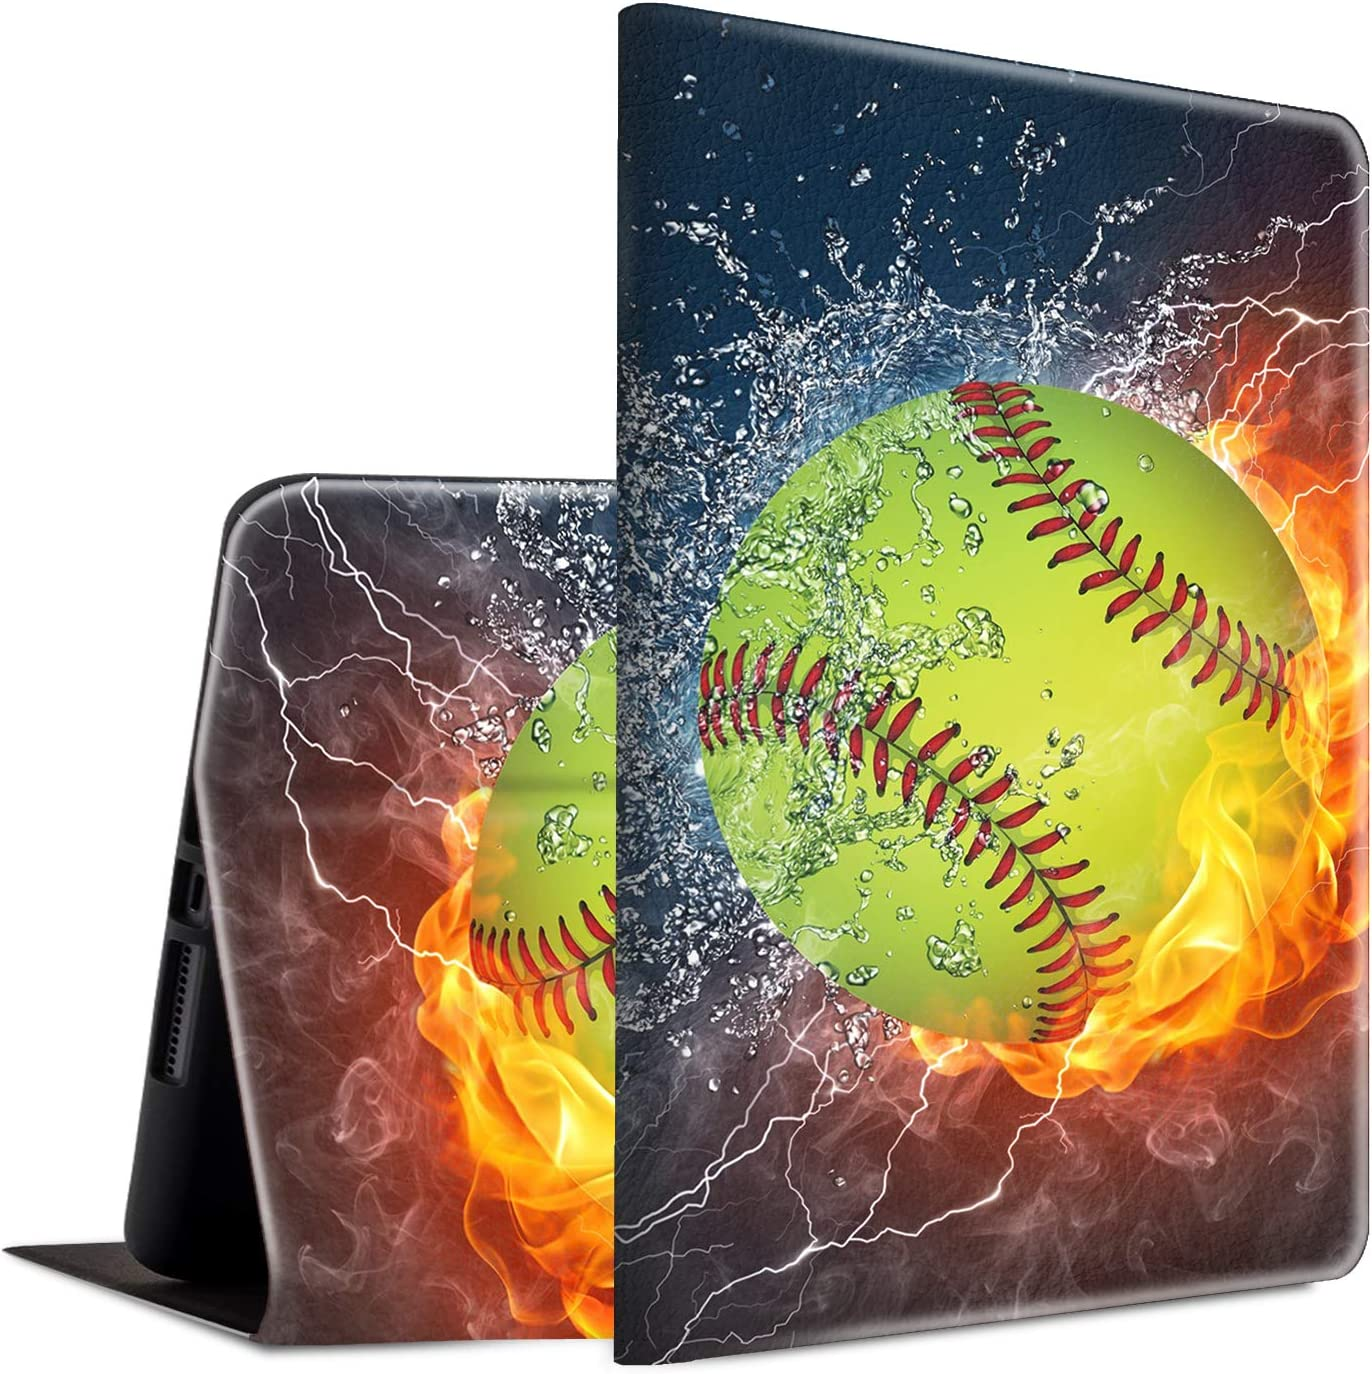 iPad 9.7 2018/2017 Case, iPad Air 2, iPad Air Case, Spsun Lightweight PU Leather Folio Adjustable Stand with Auto Wake/Sleep Smart Case for Apple ipad 6th/5th Gen - Fire and Water Softball